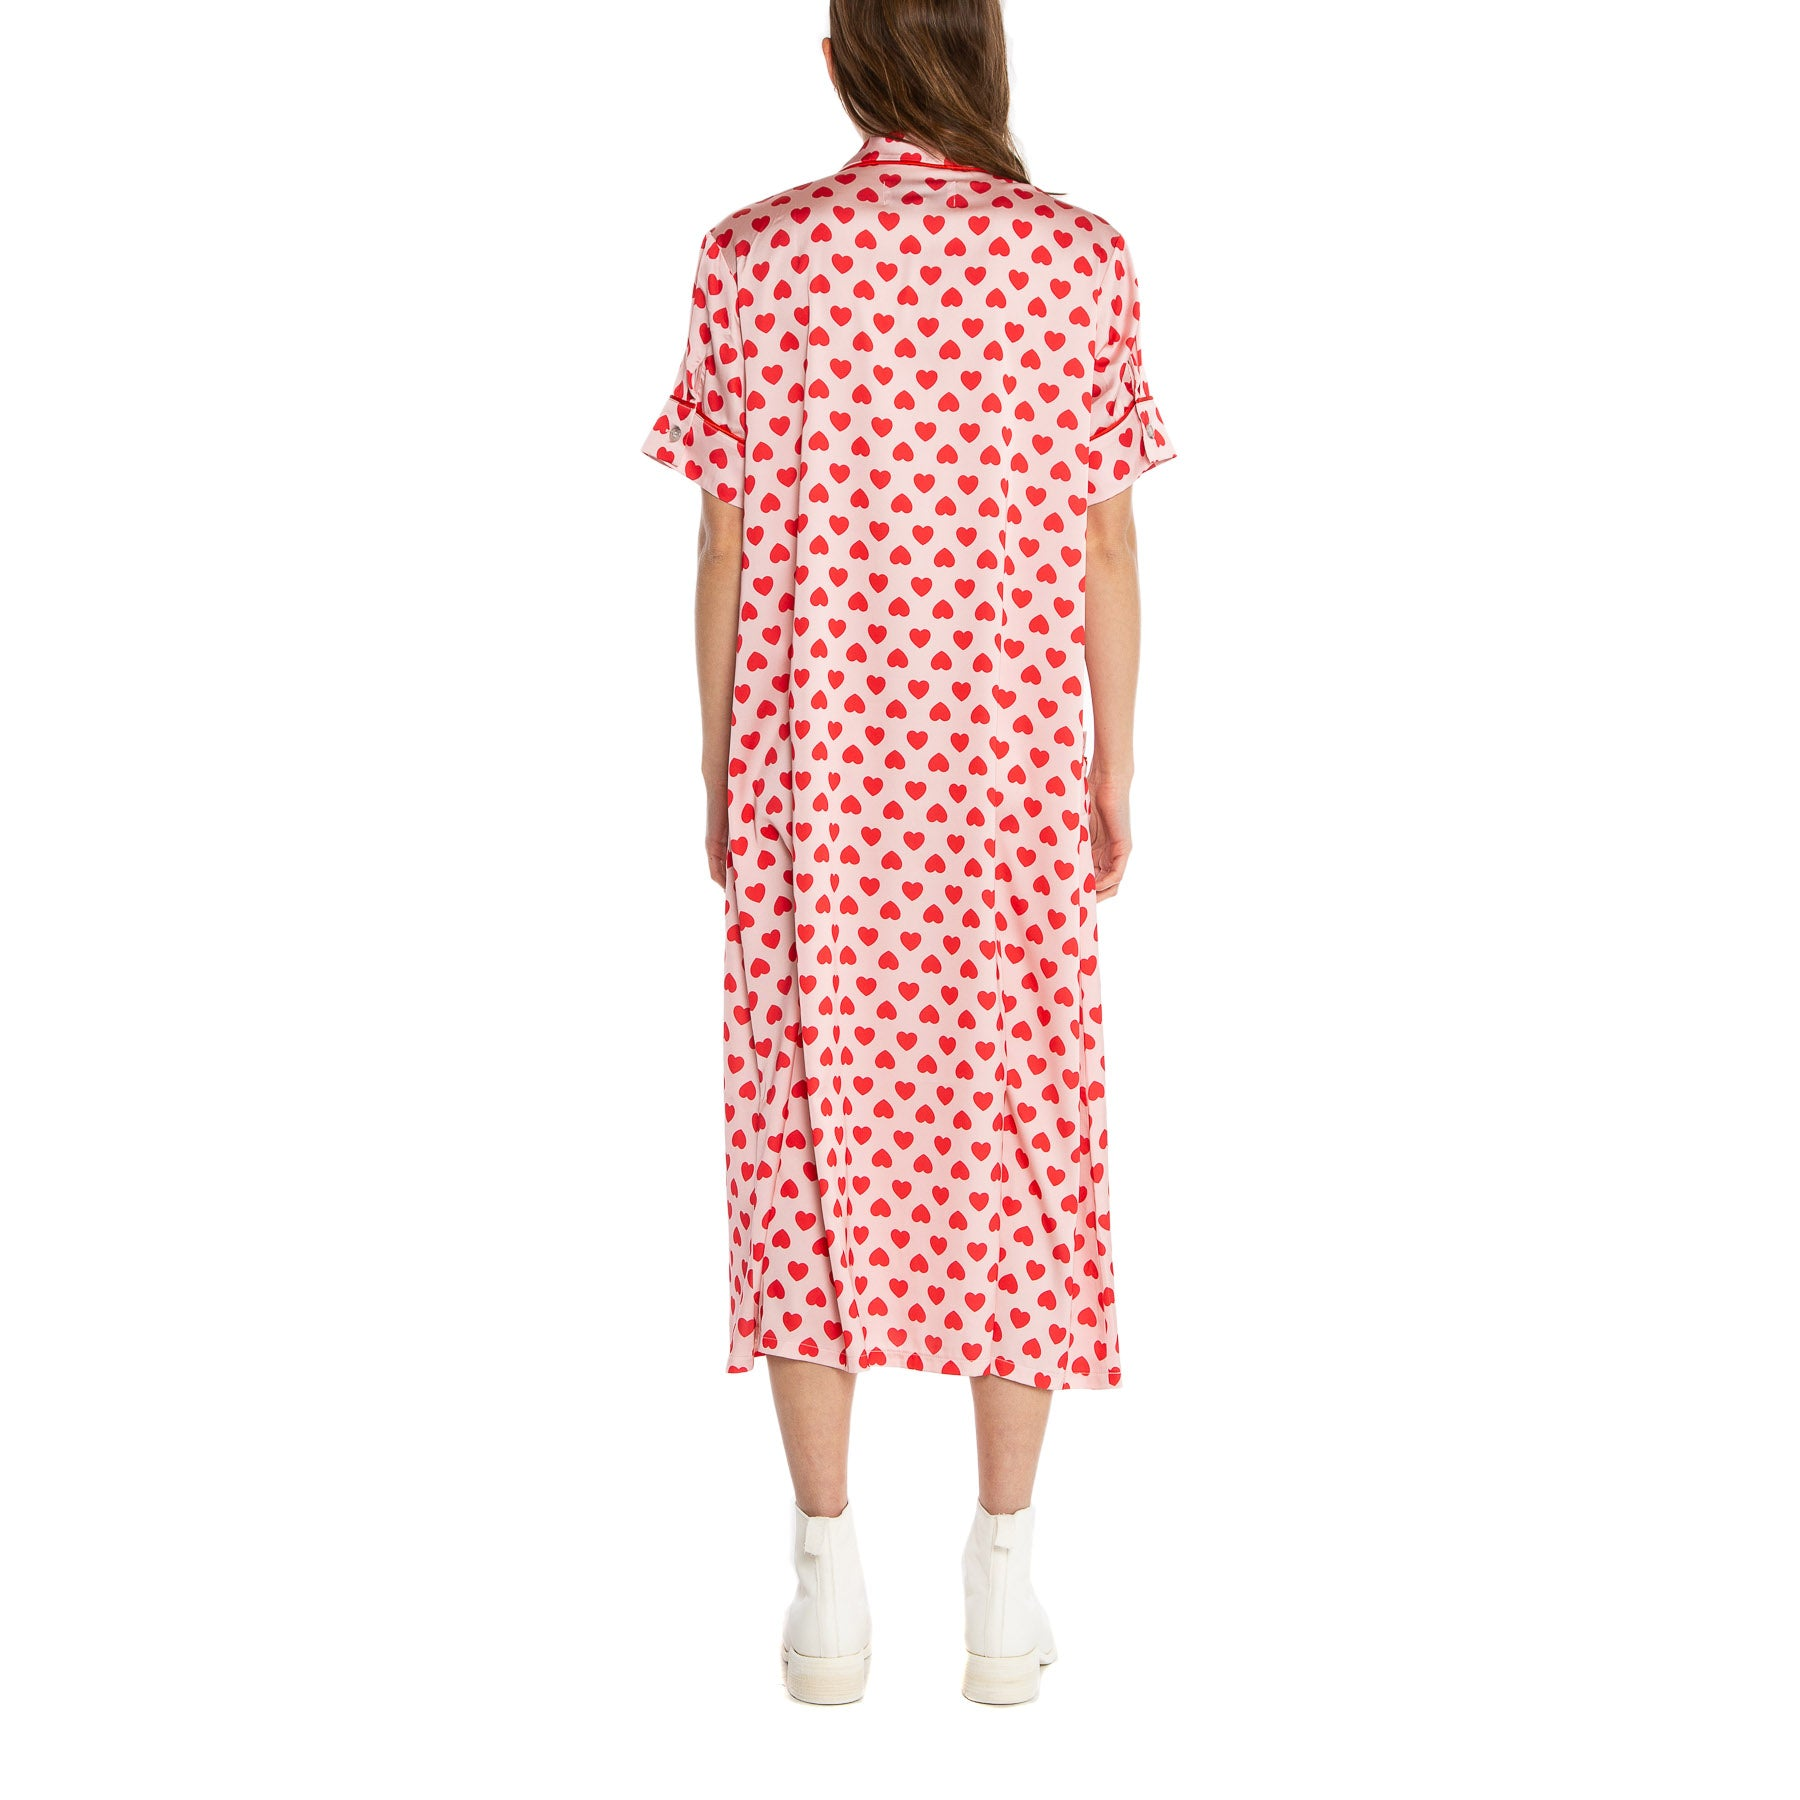 NATASHA ZINKO | RED HEARTS DRESS